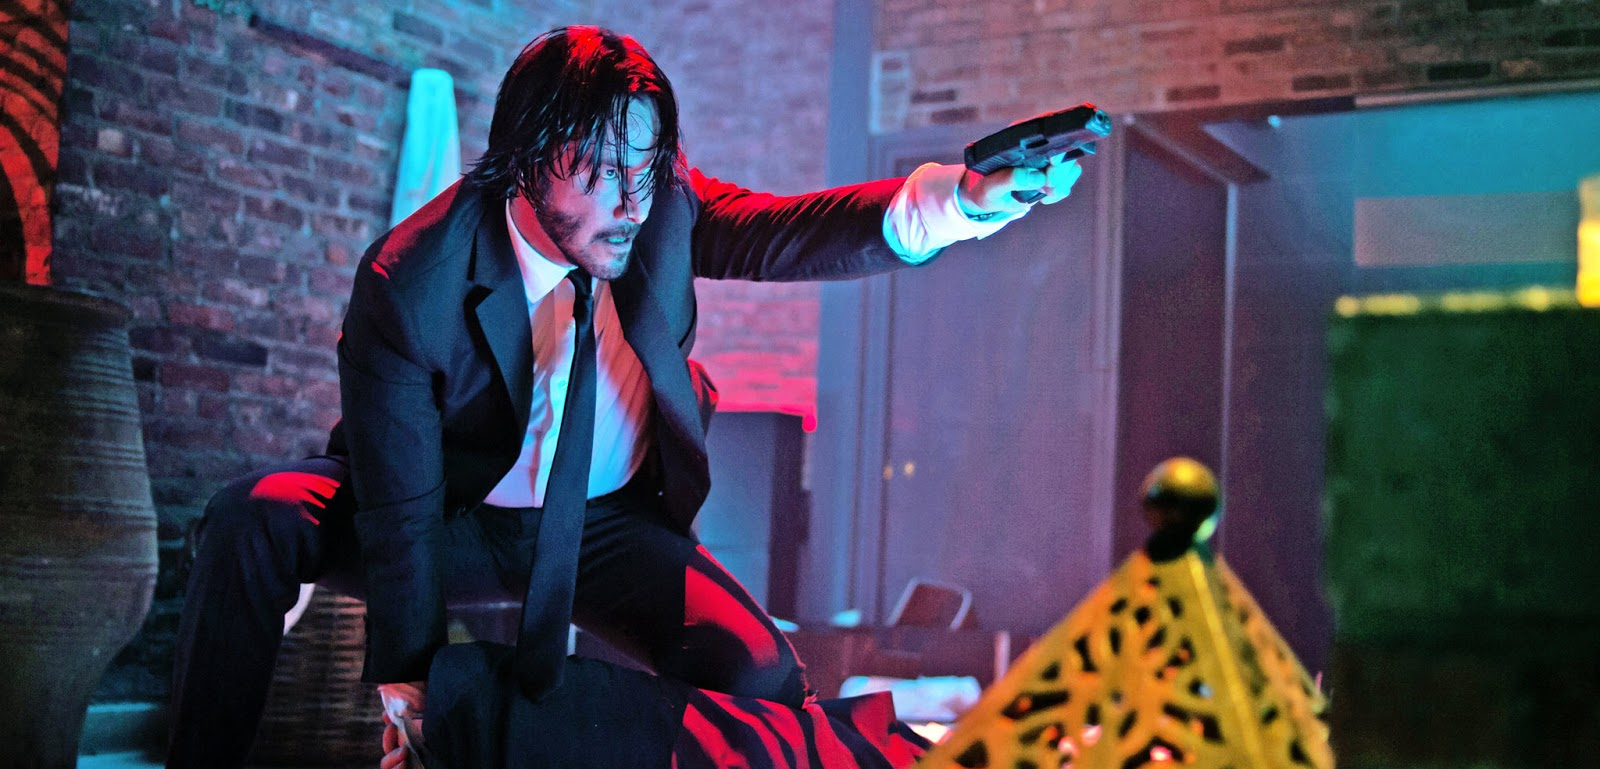 Fight Work: The Red Circle Shootout from John Wick | Scott's Self